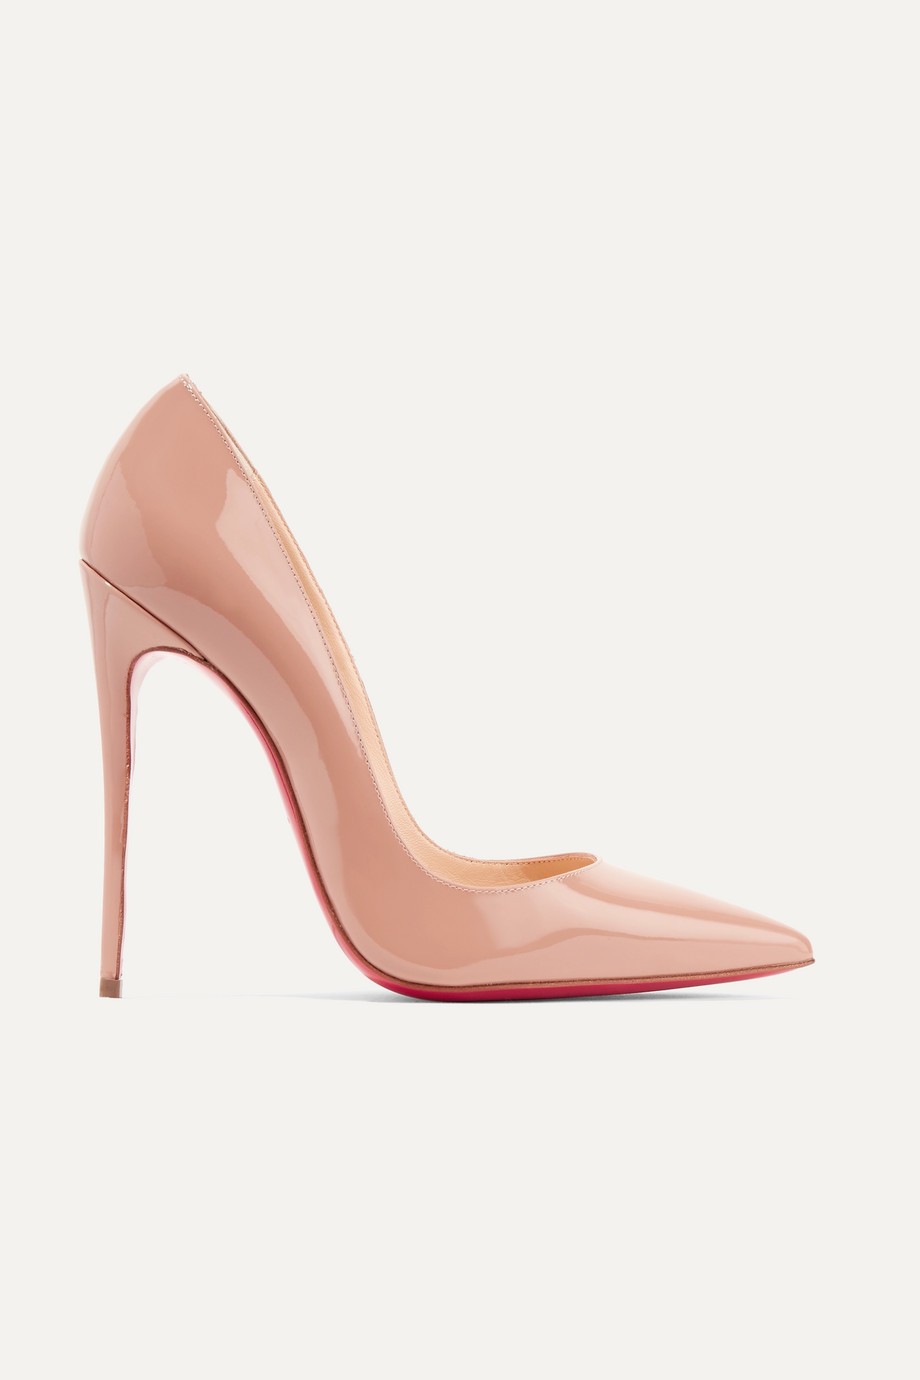 Christian Louboutin So Kate 120 Pumps aus Lackleder